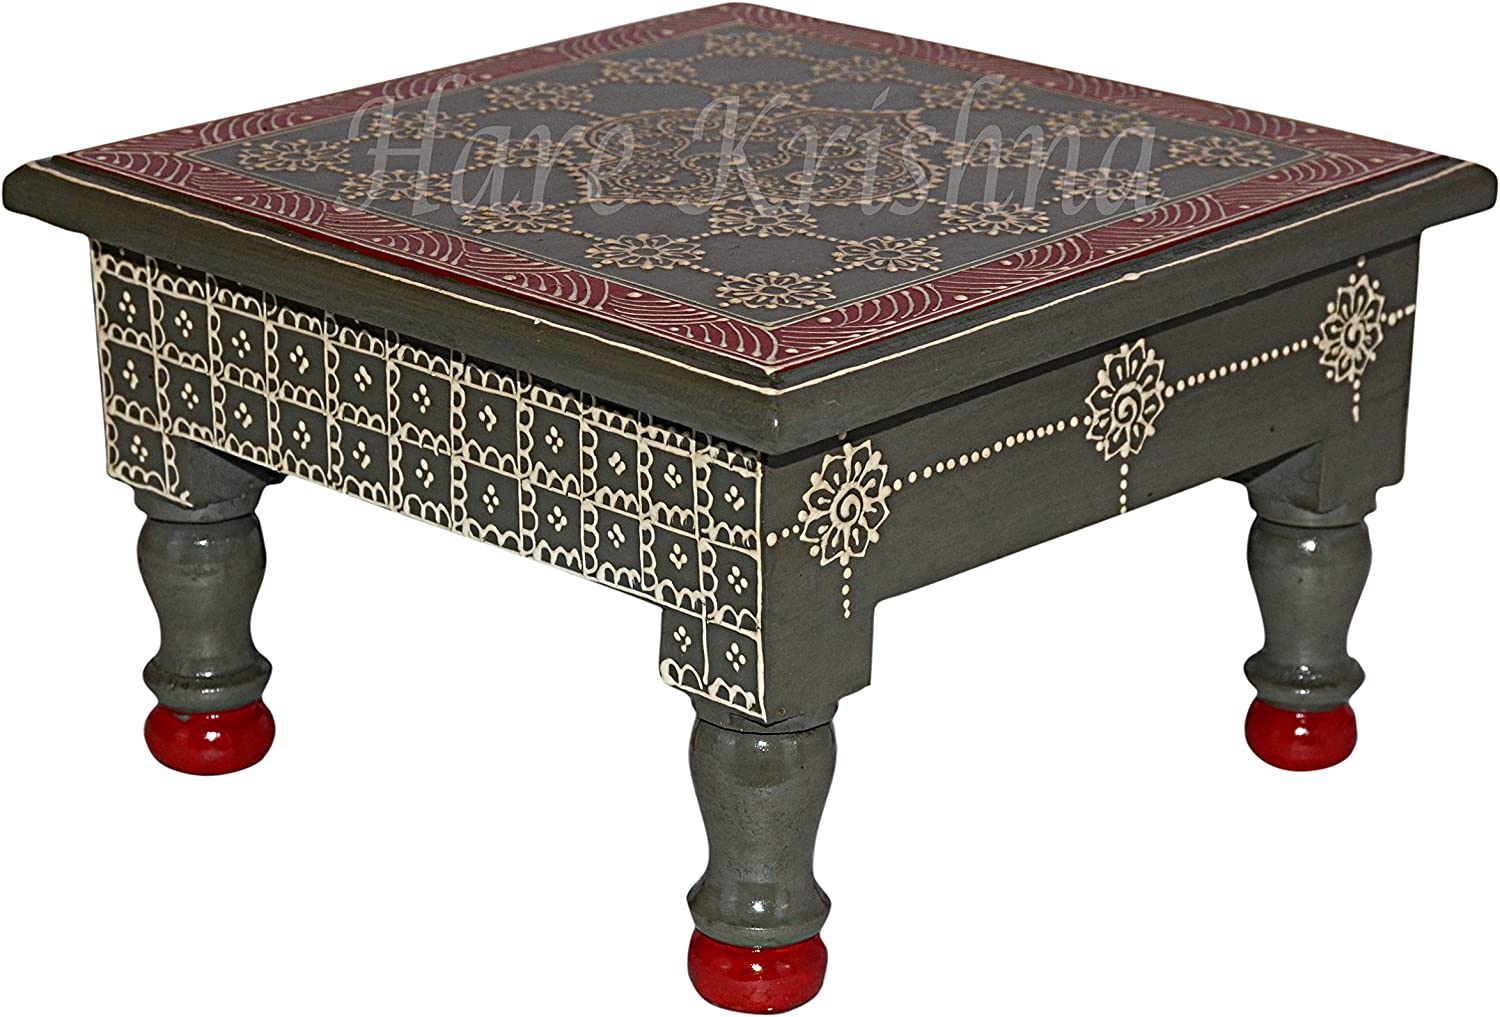 Home Decor Puja Chowki Small Painted Wooden End Side Table (Gray) 9 x 9 x 5.5 Inches